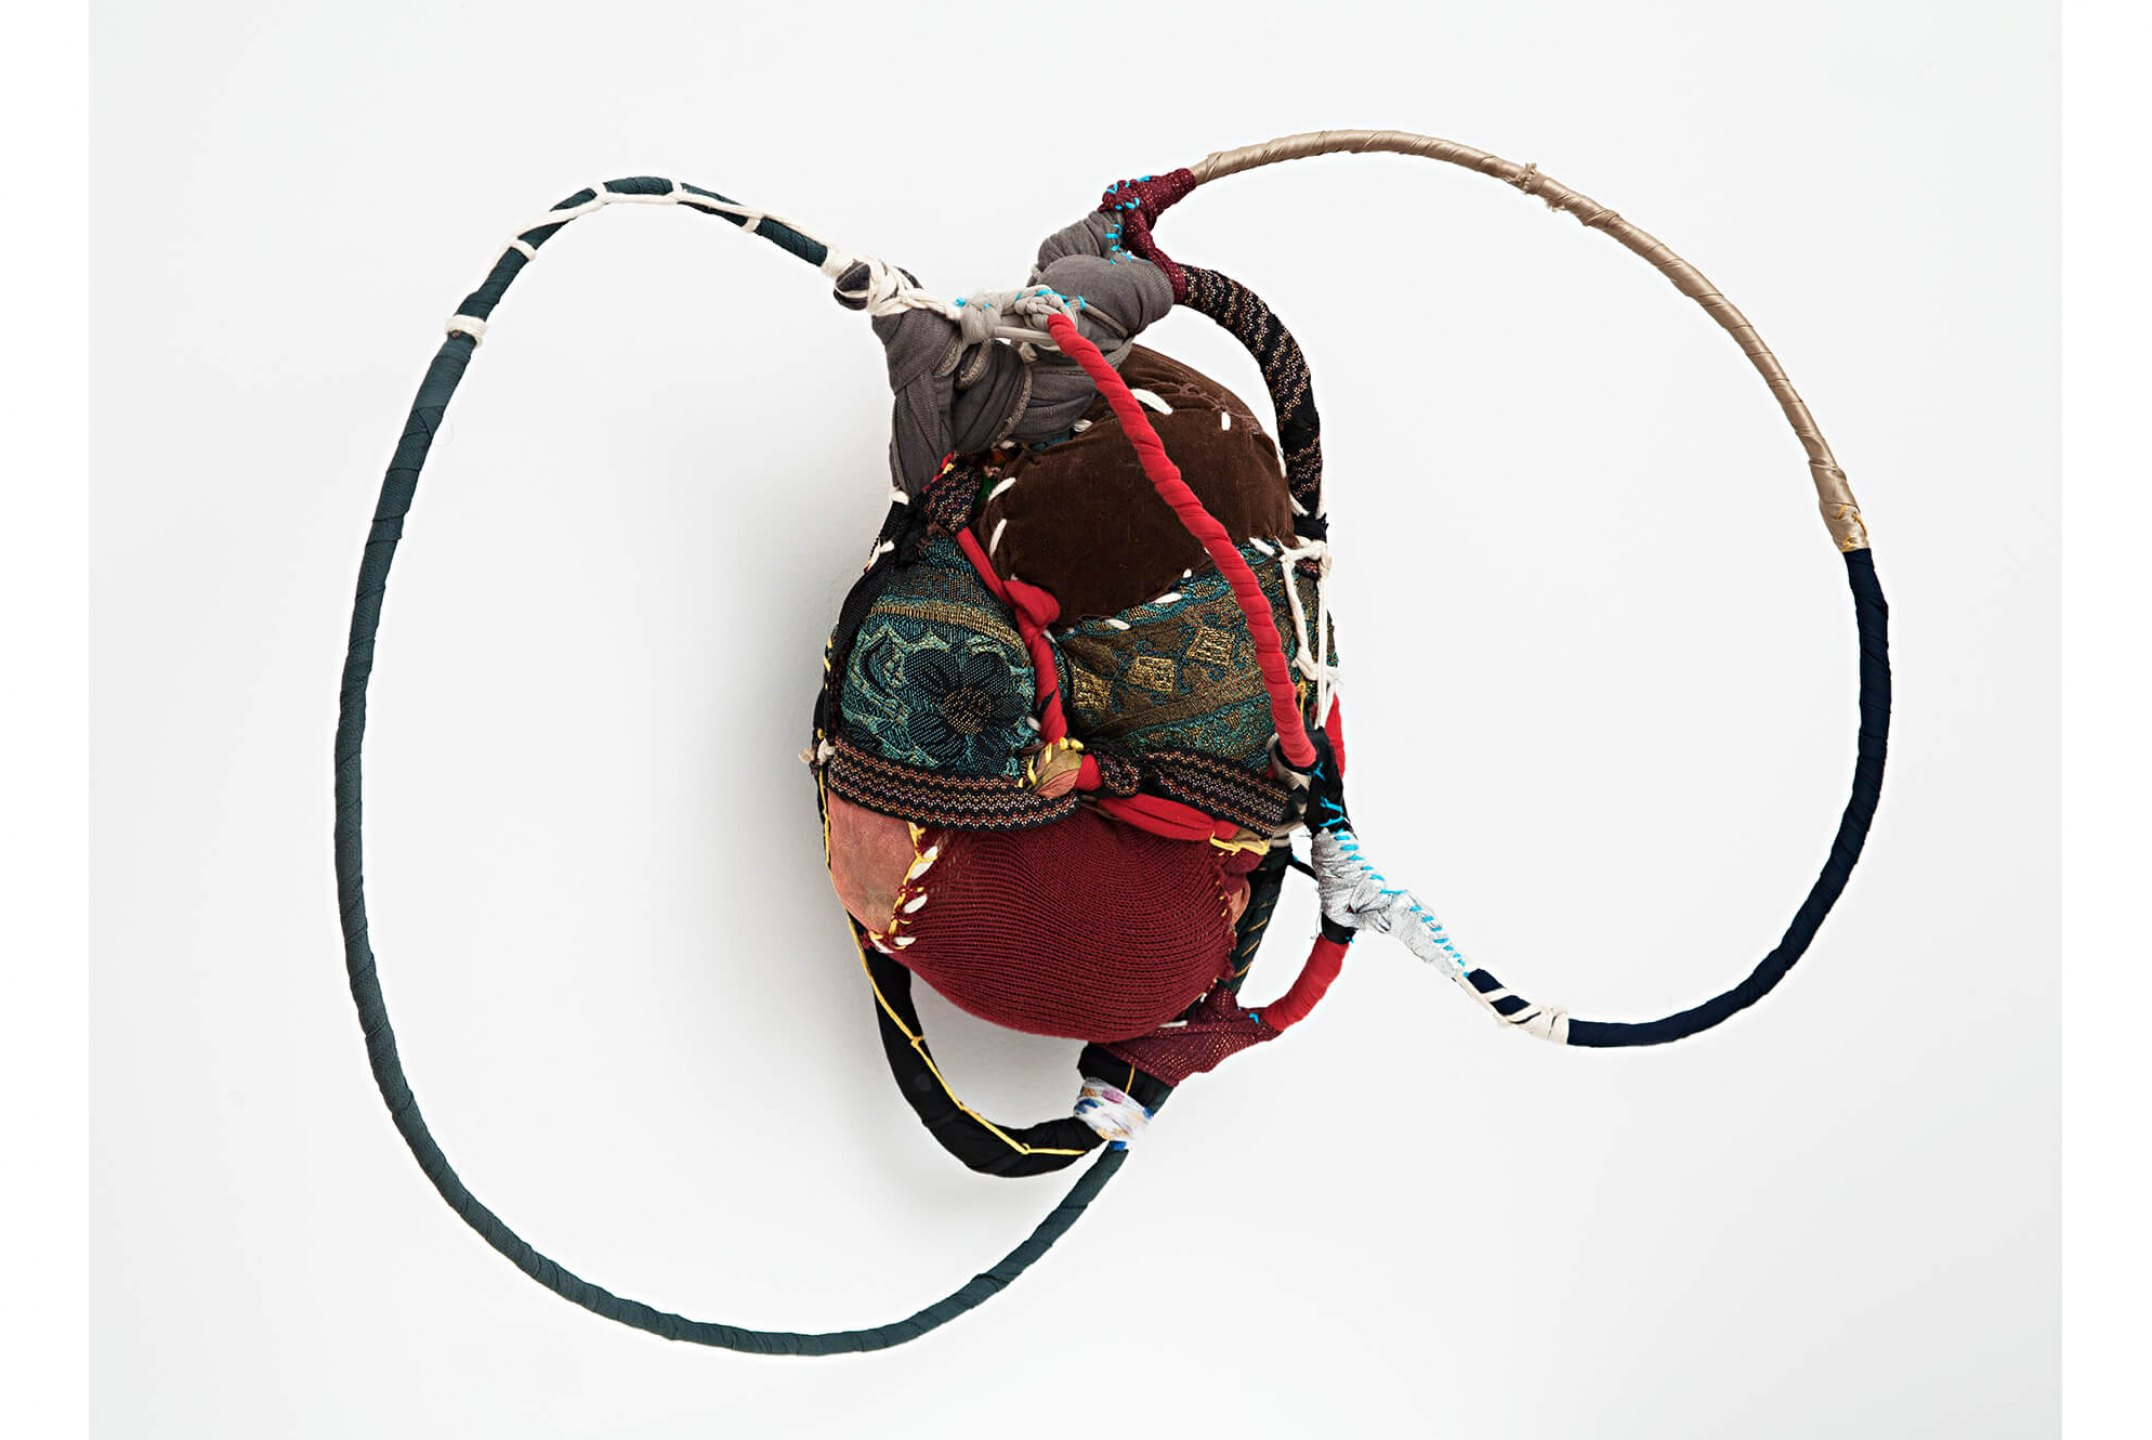 Sonia Gomes,&nbsp;<em>untitled, from Patuá series</em>,&nbsp;2004, stitching, bindings, different fabrics and laces on wire, 50 × 63 × 24 cm - Mendes Wood DM